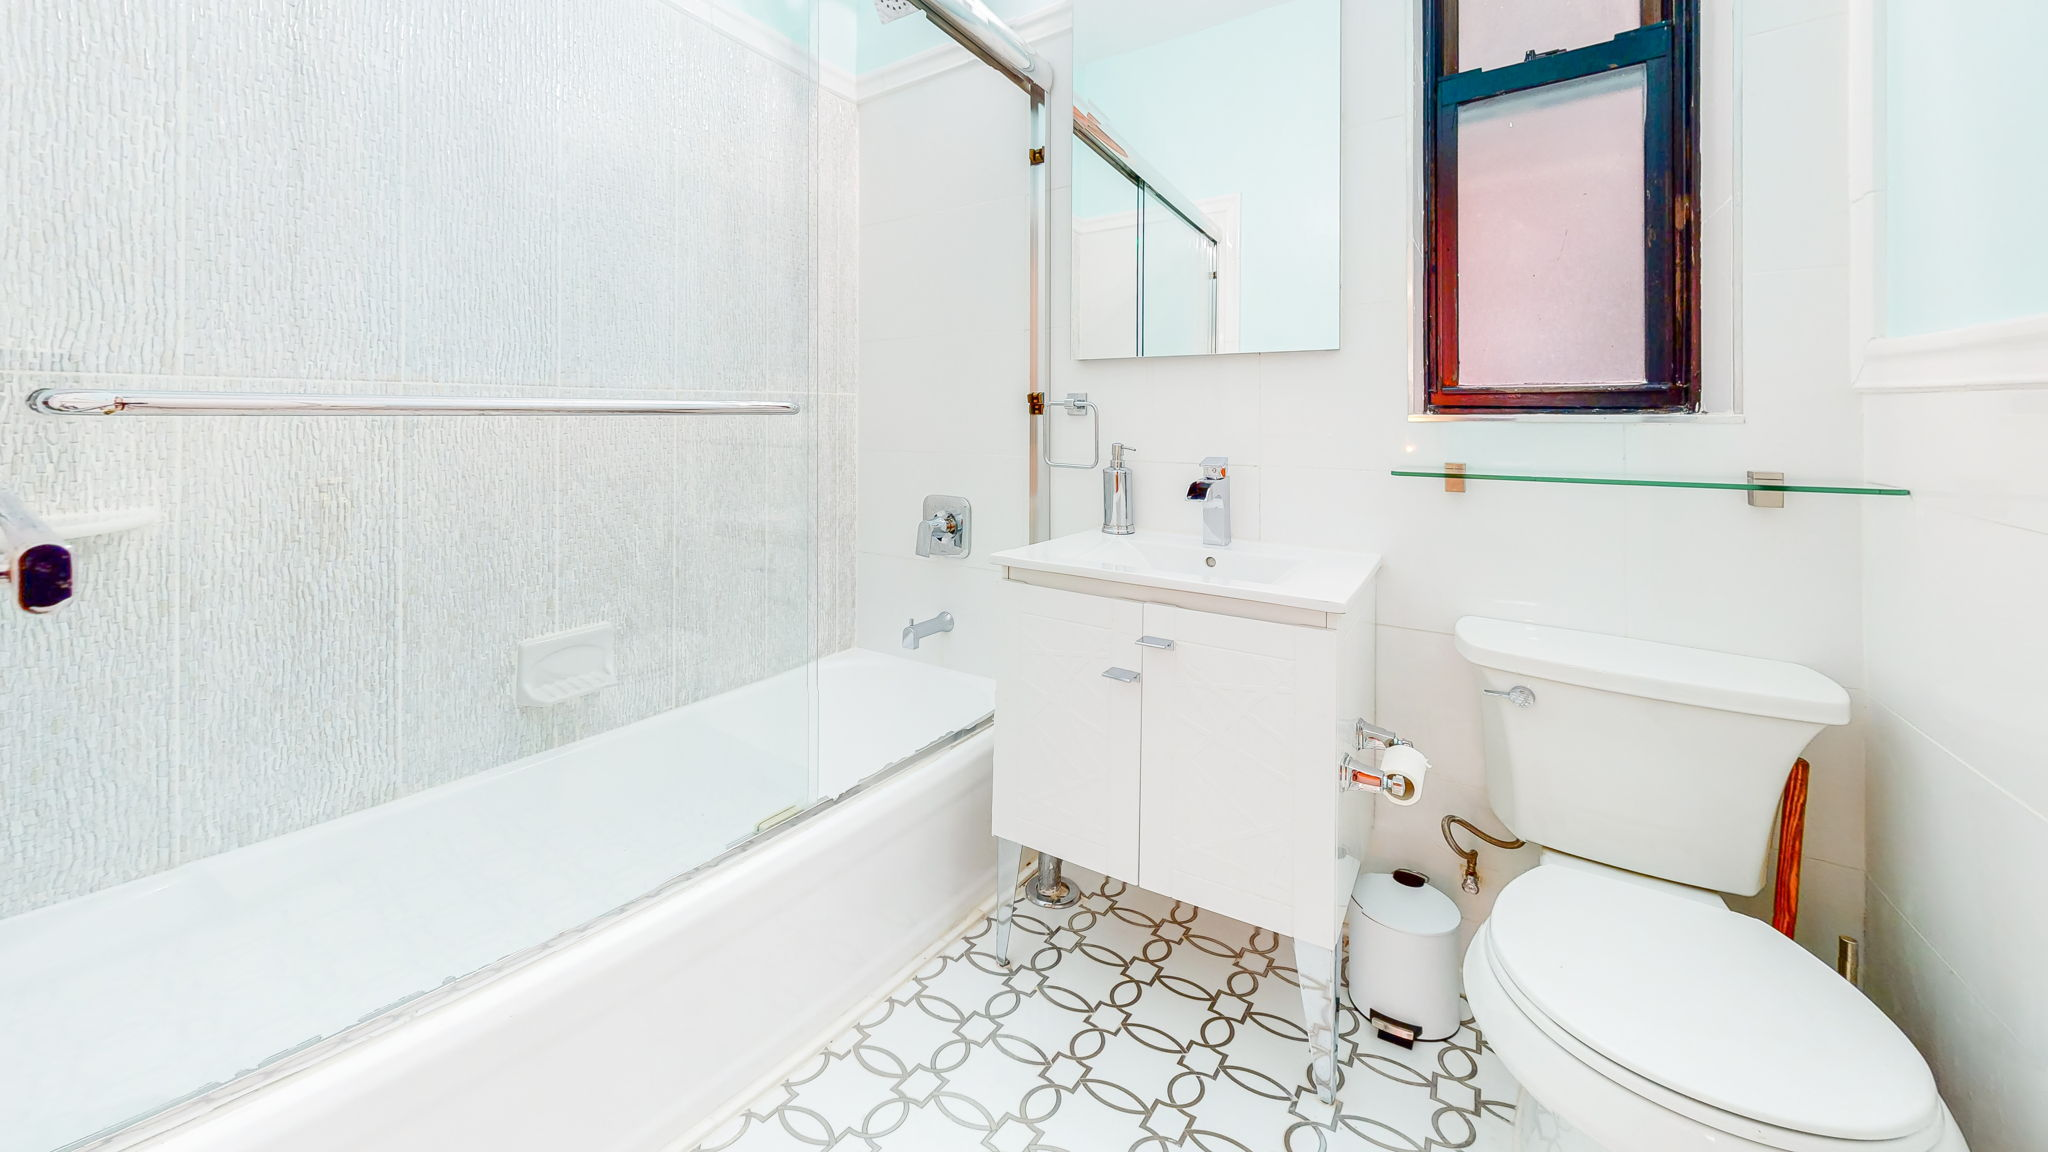 161 East 88th Street, New York, New York, New York, United States 10128, 2 Bedrooms Bedrooms, ,2 BathroomsBathrooms,Co-op,FOR SALE,East 88th Street,1159